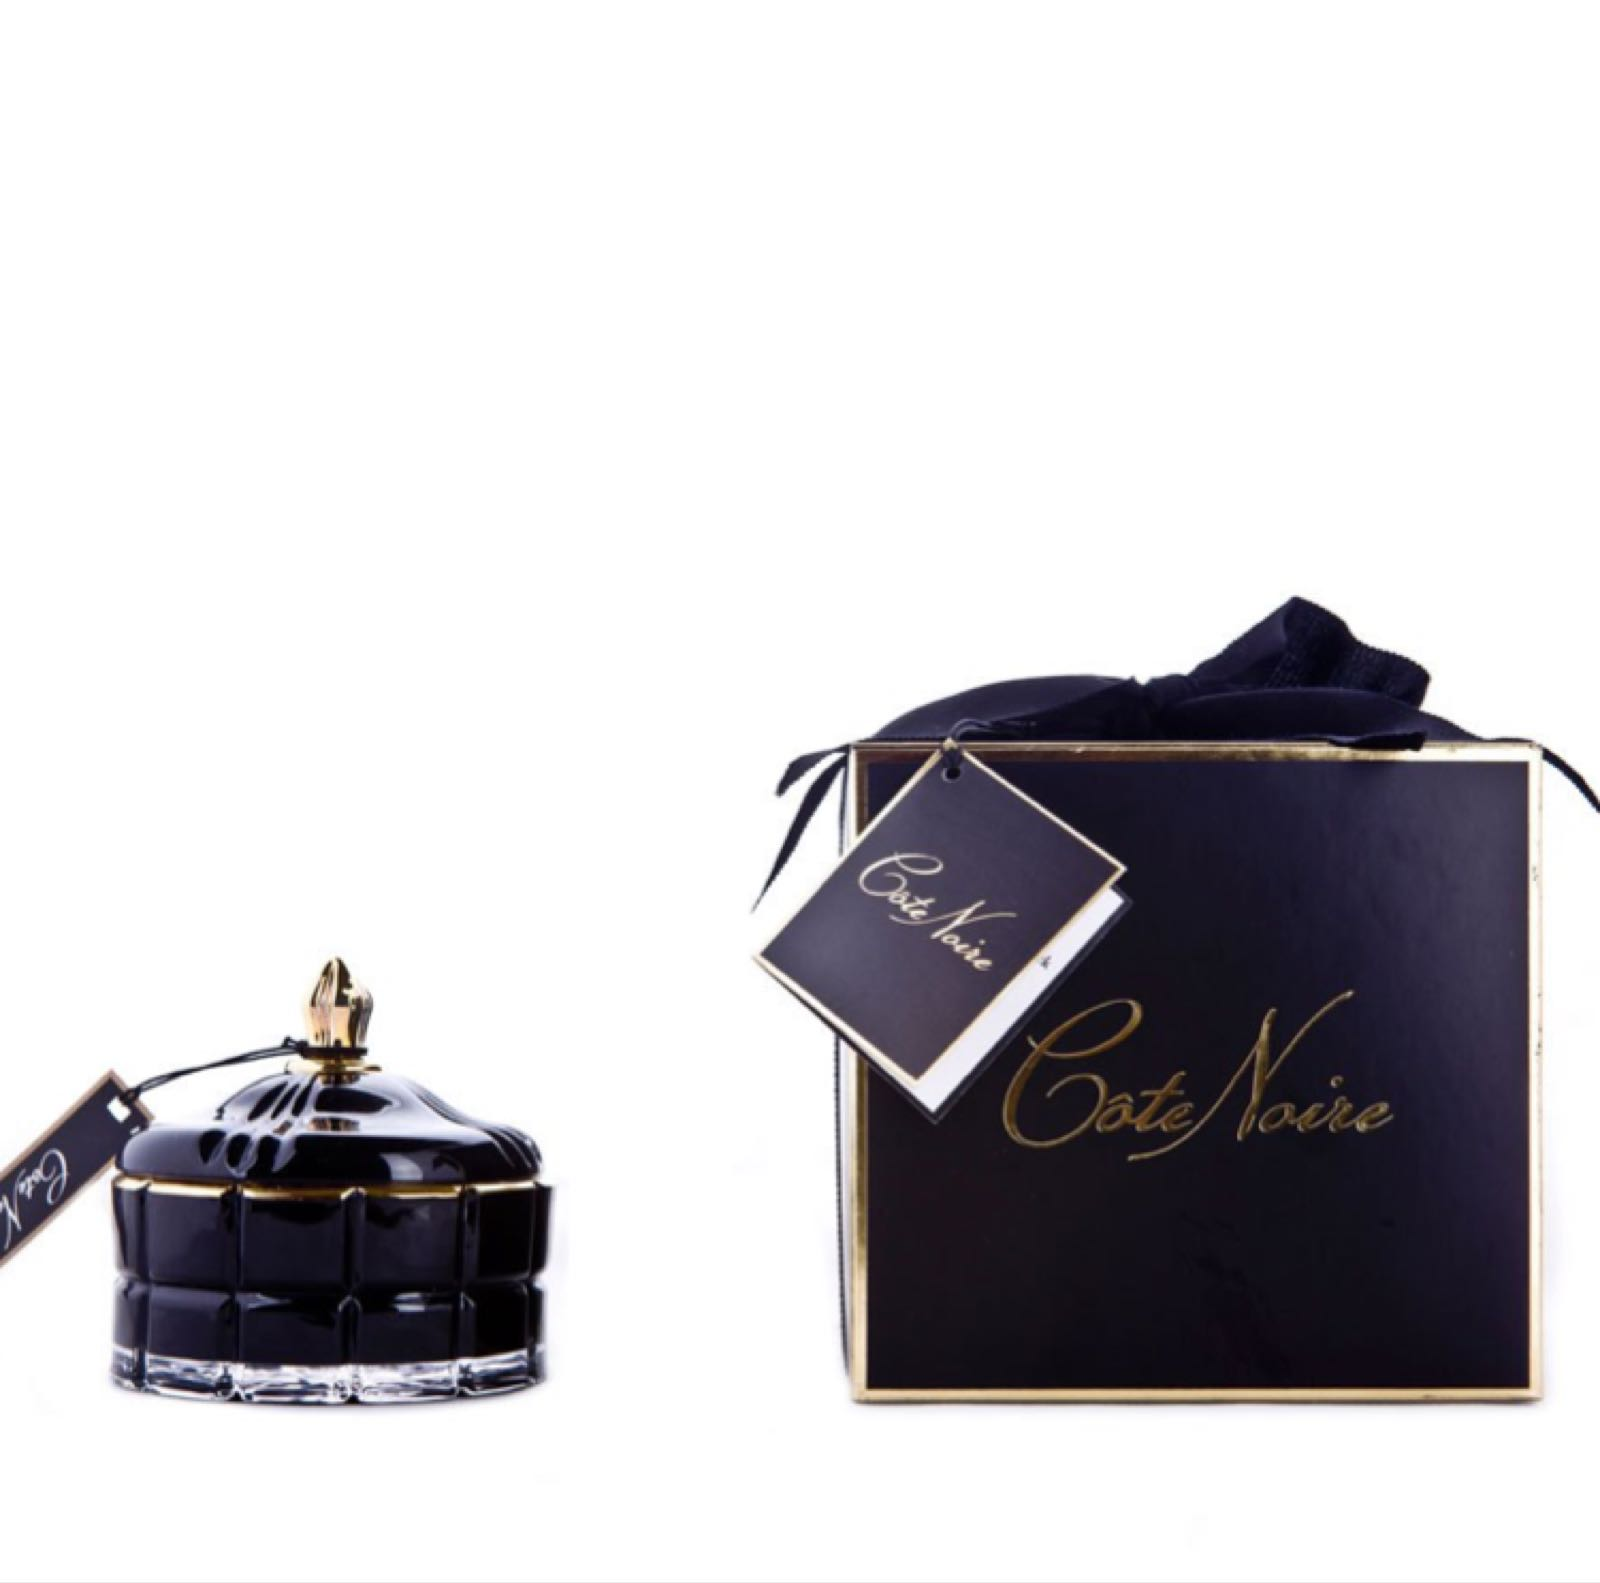 Cote Noire Art Deco Candle French Morning Tea